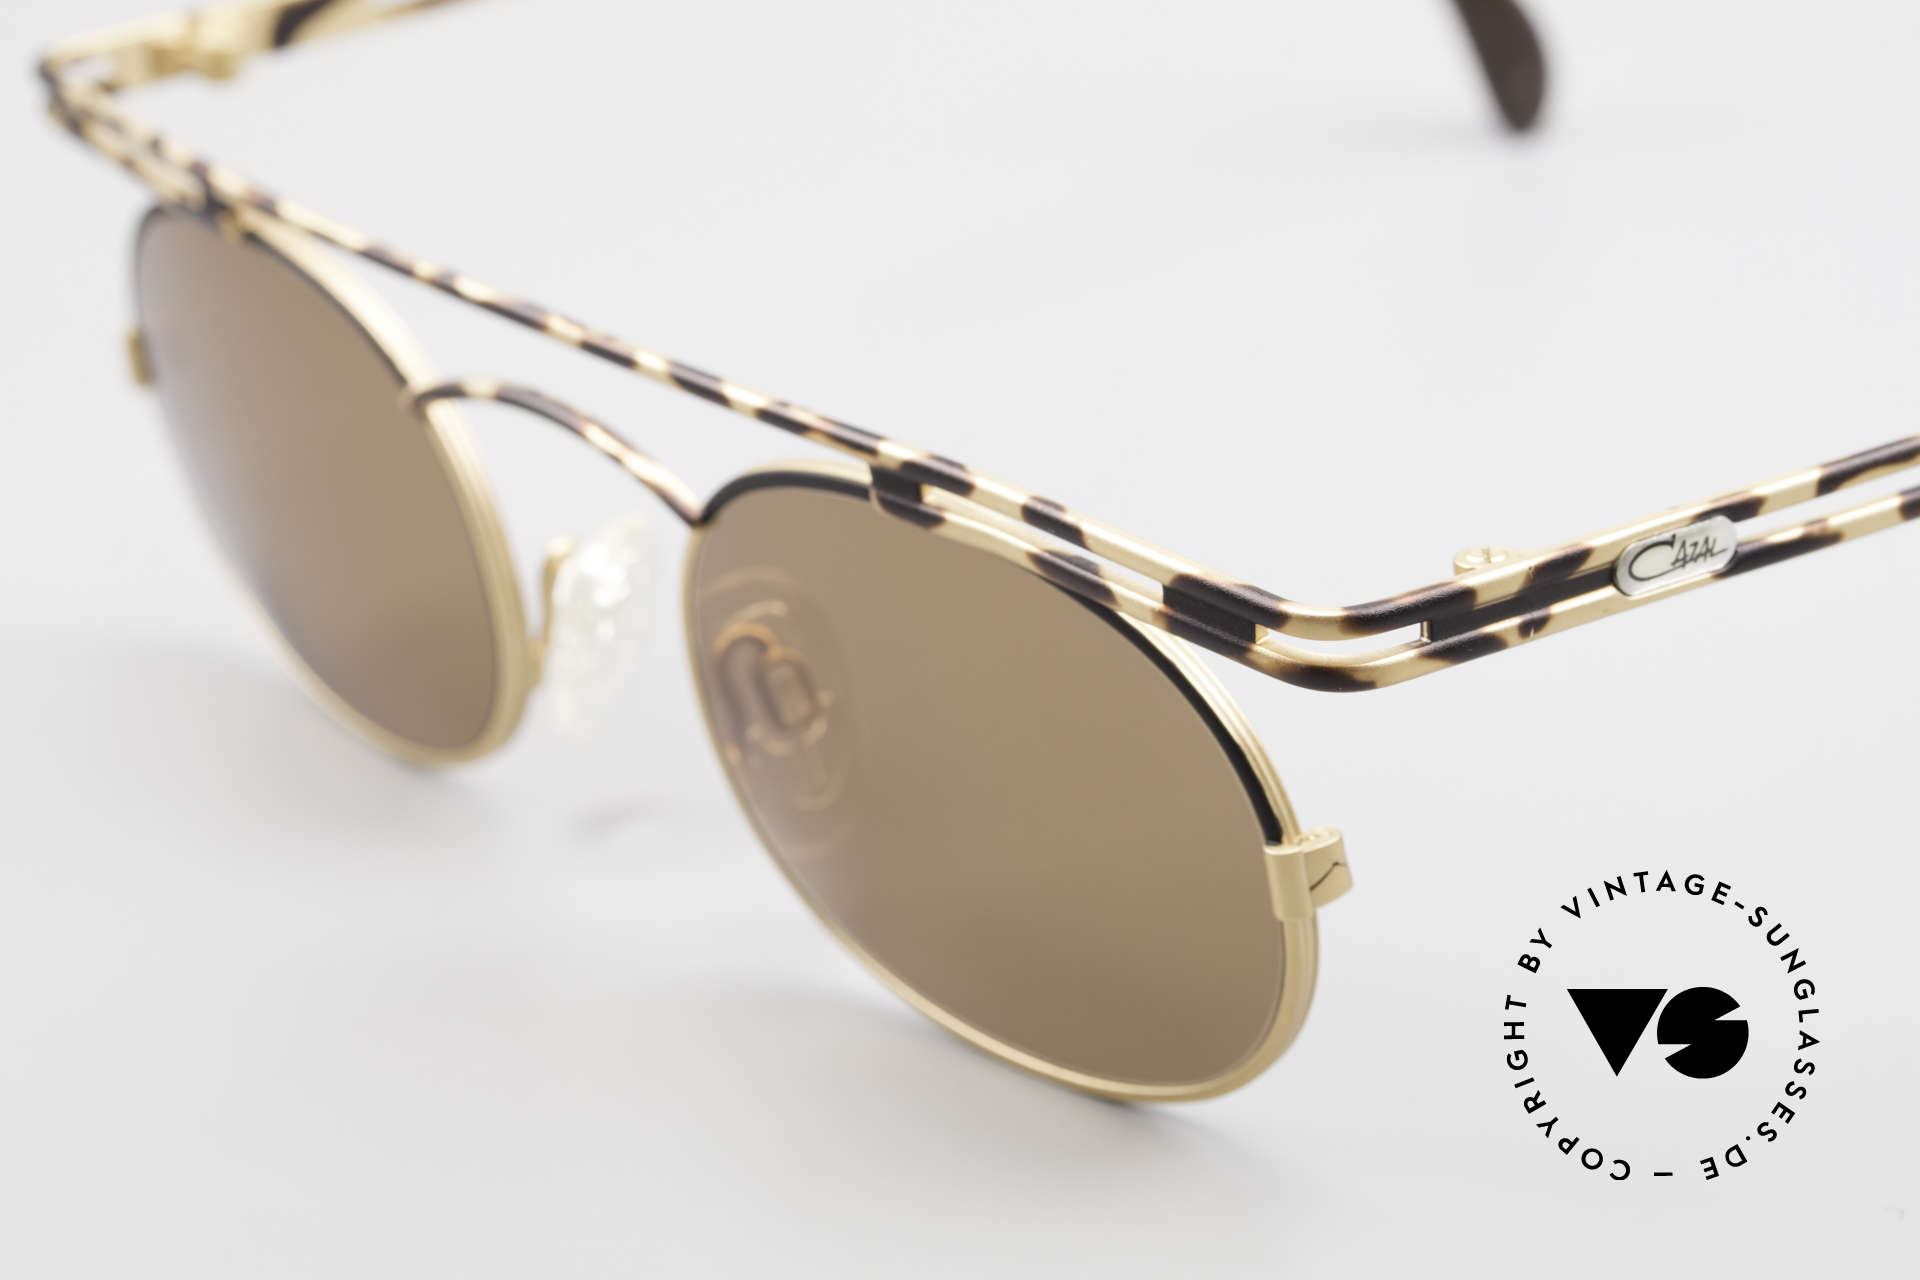 Cazal 761 Rare Old Cazal 90's Sunglasses, new old stock (like all our rare vintage Cazal specs), Made for Men and Women